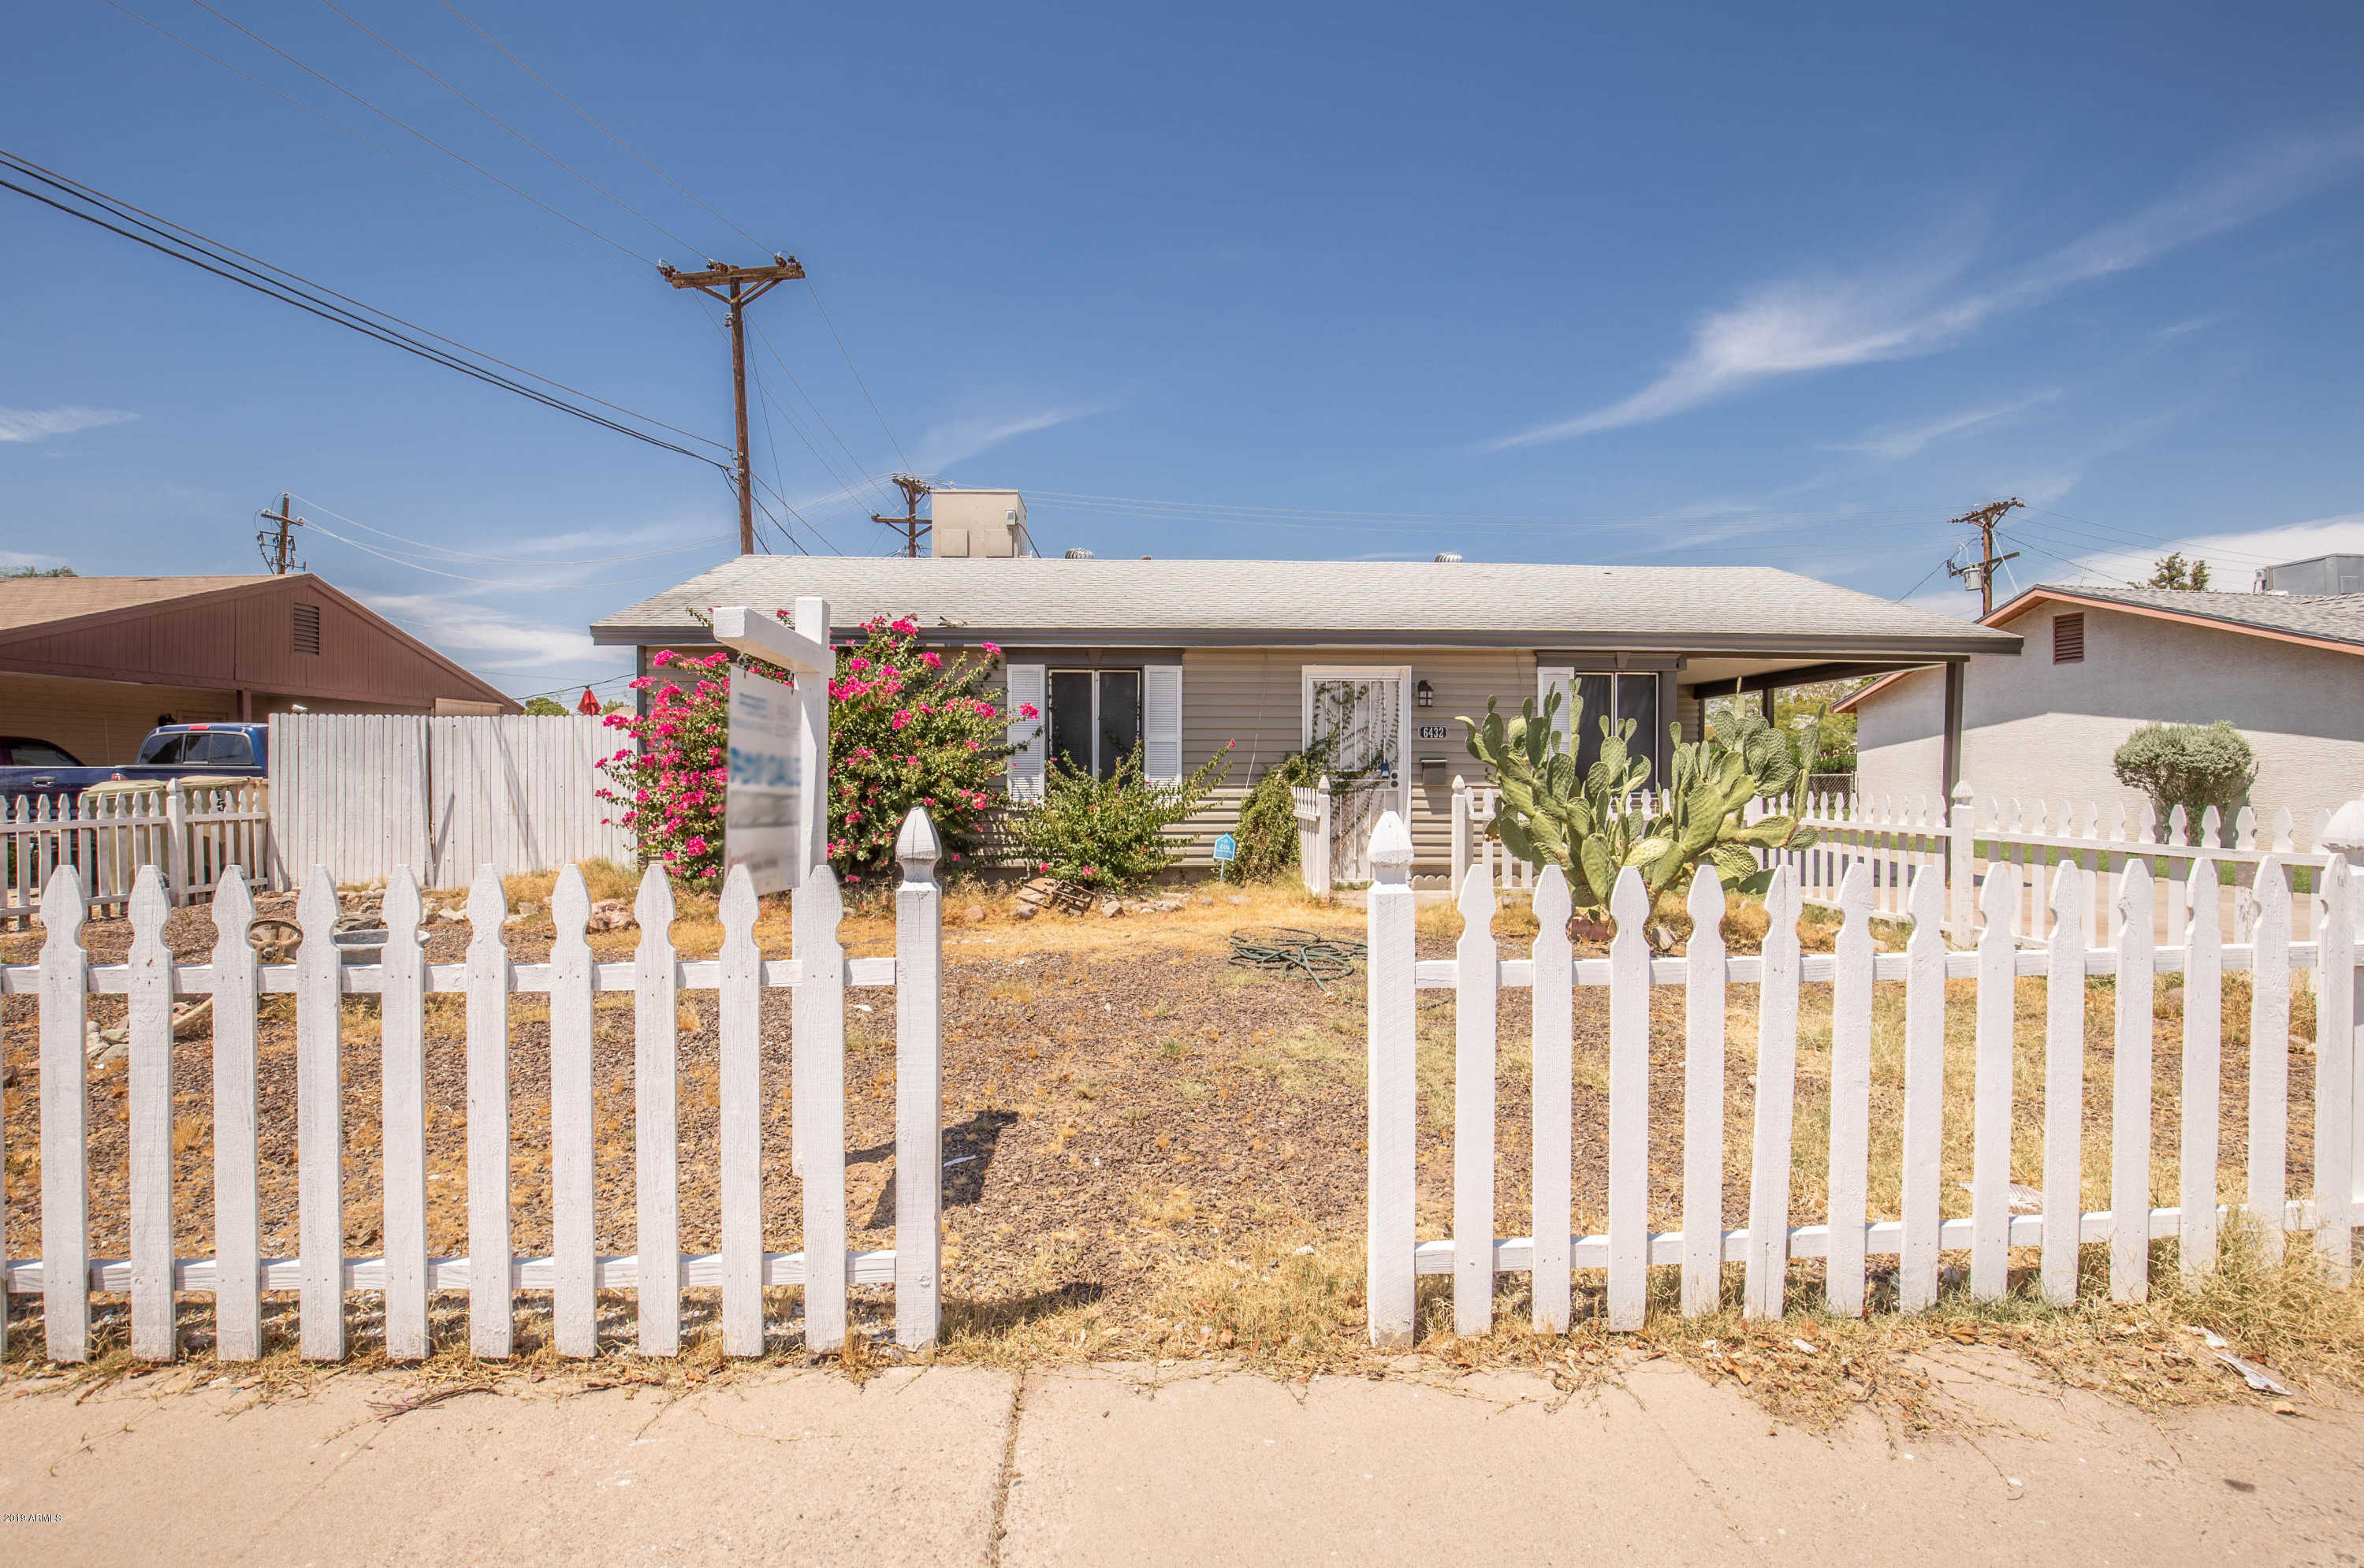 $209,900 - 4Br/3Ba - Home for Sale in Maryvale Terrace 20-a Lts 7490-7494, Glendale